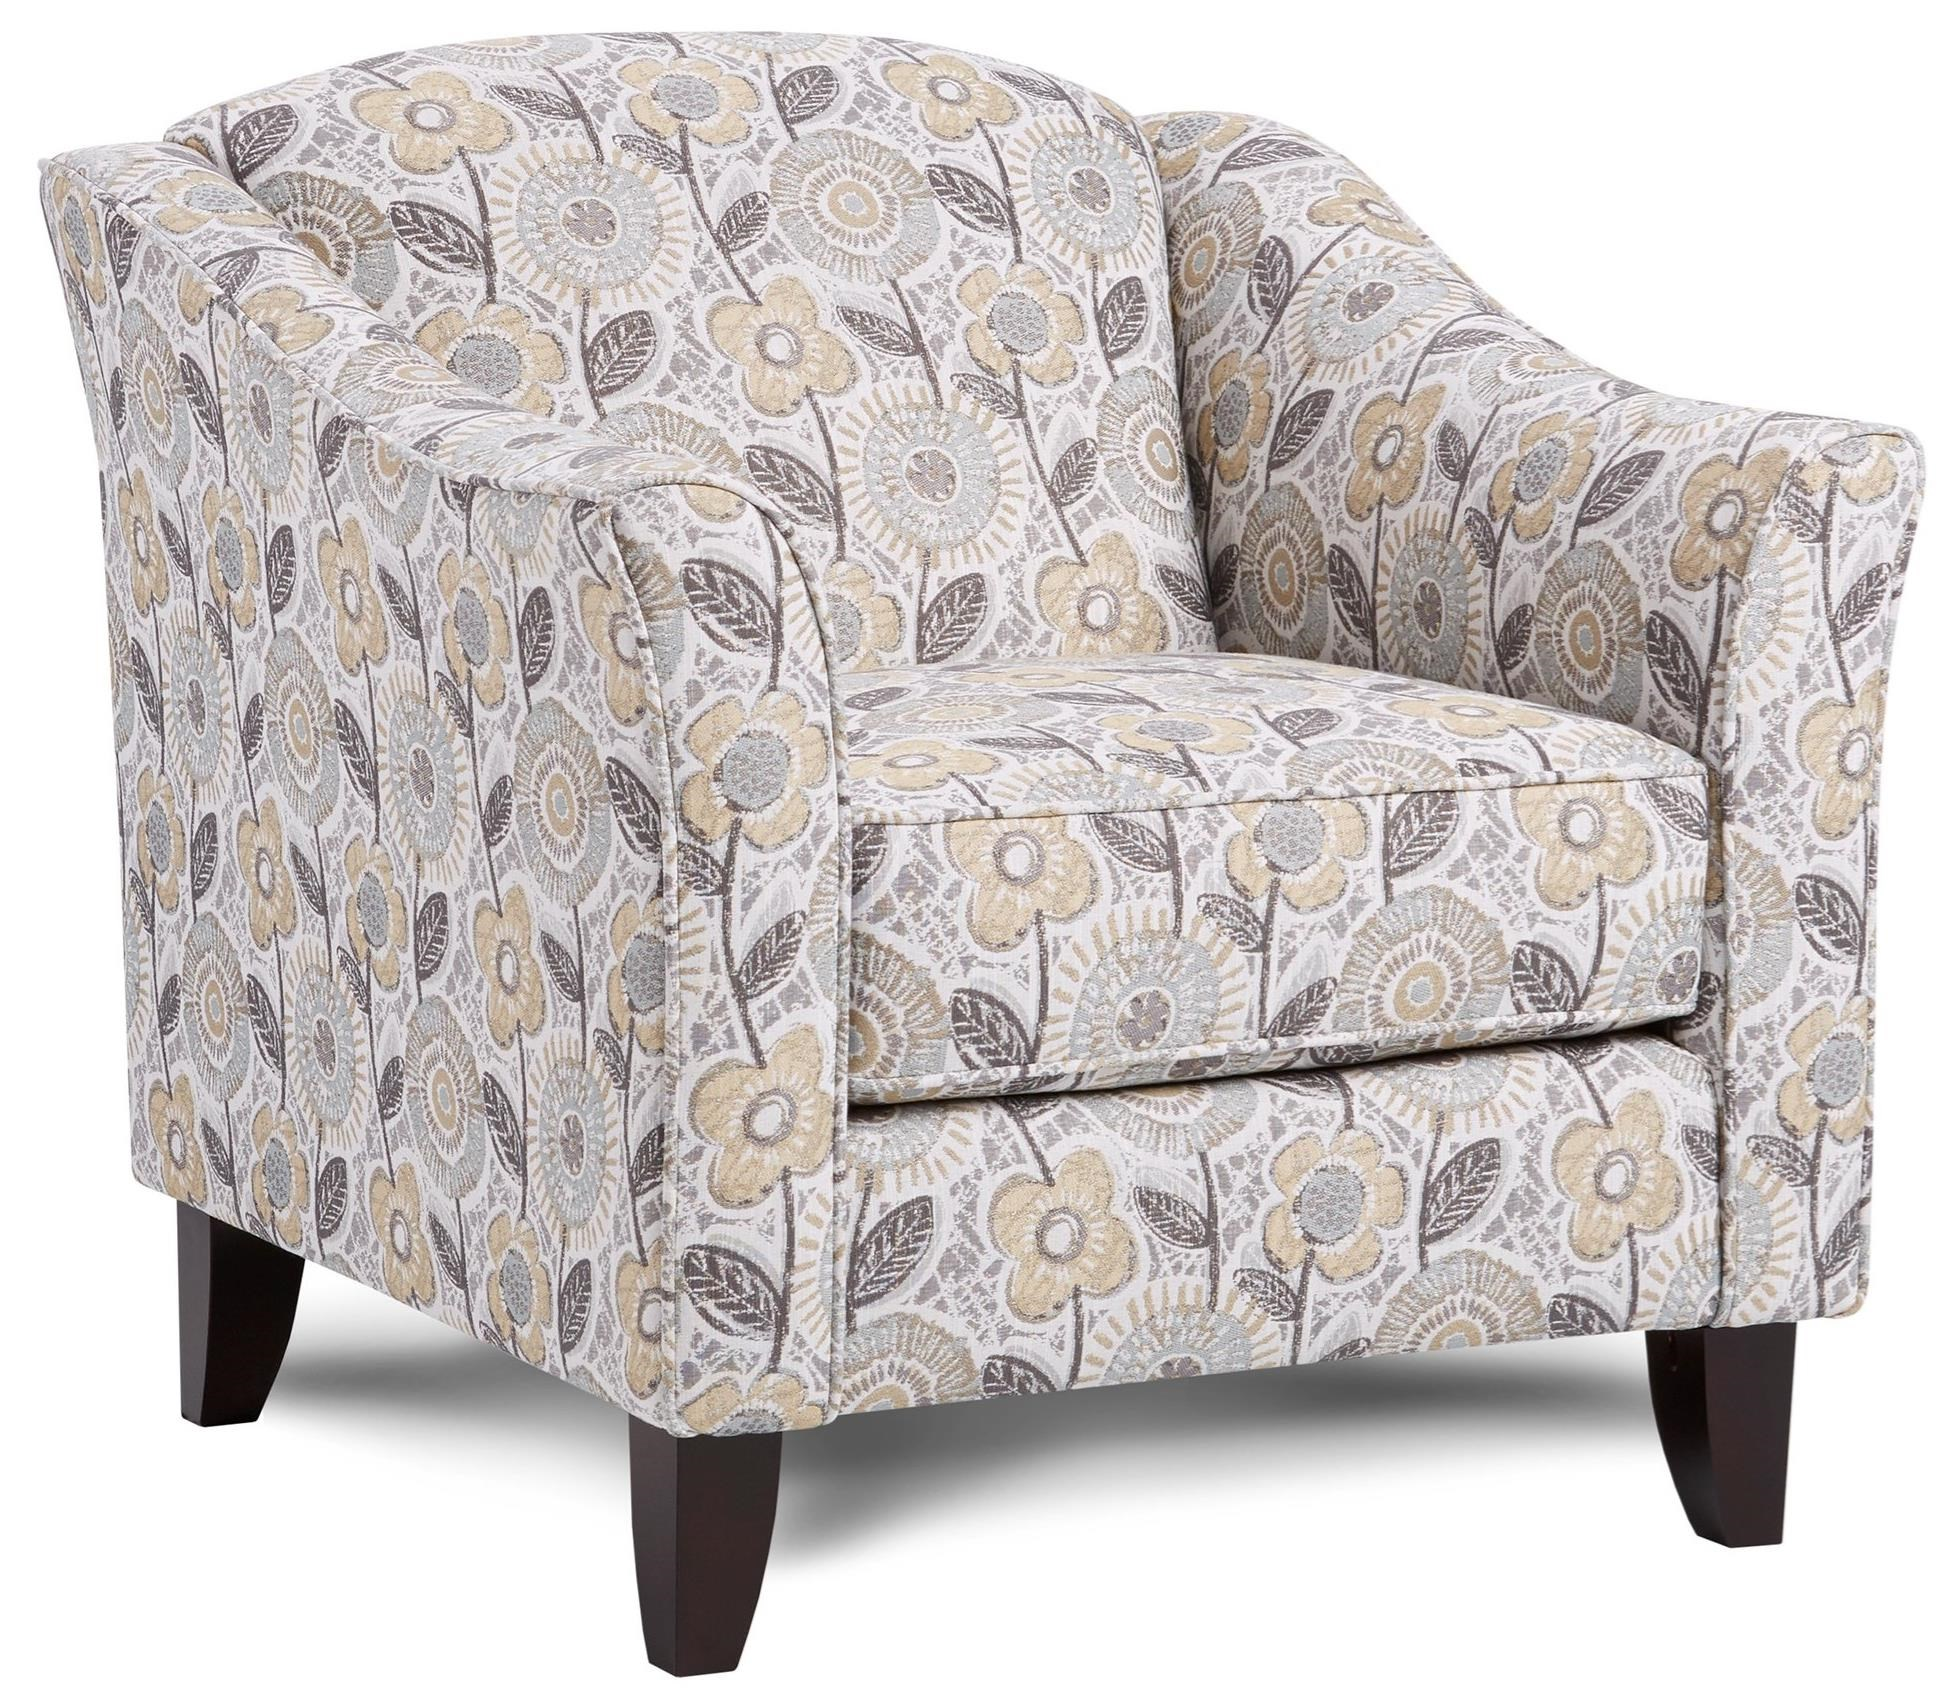 452 Chair by Fusion Furniture at Miller Waldrop Furniture and Decor